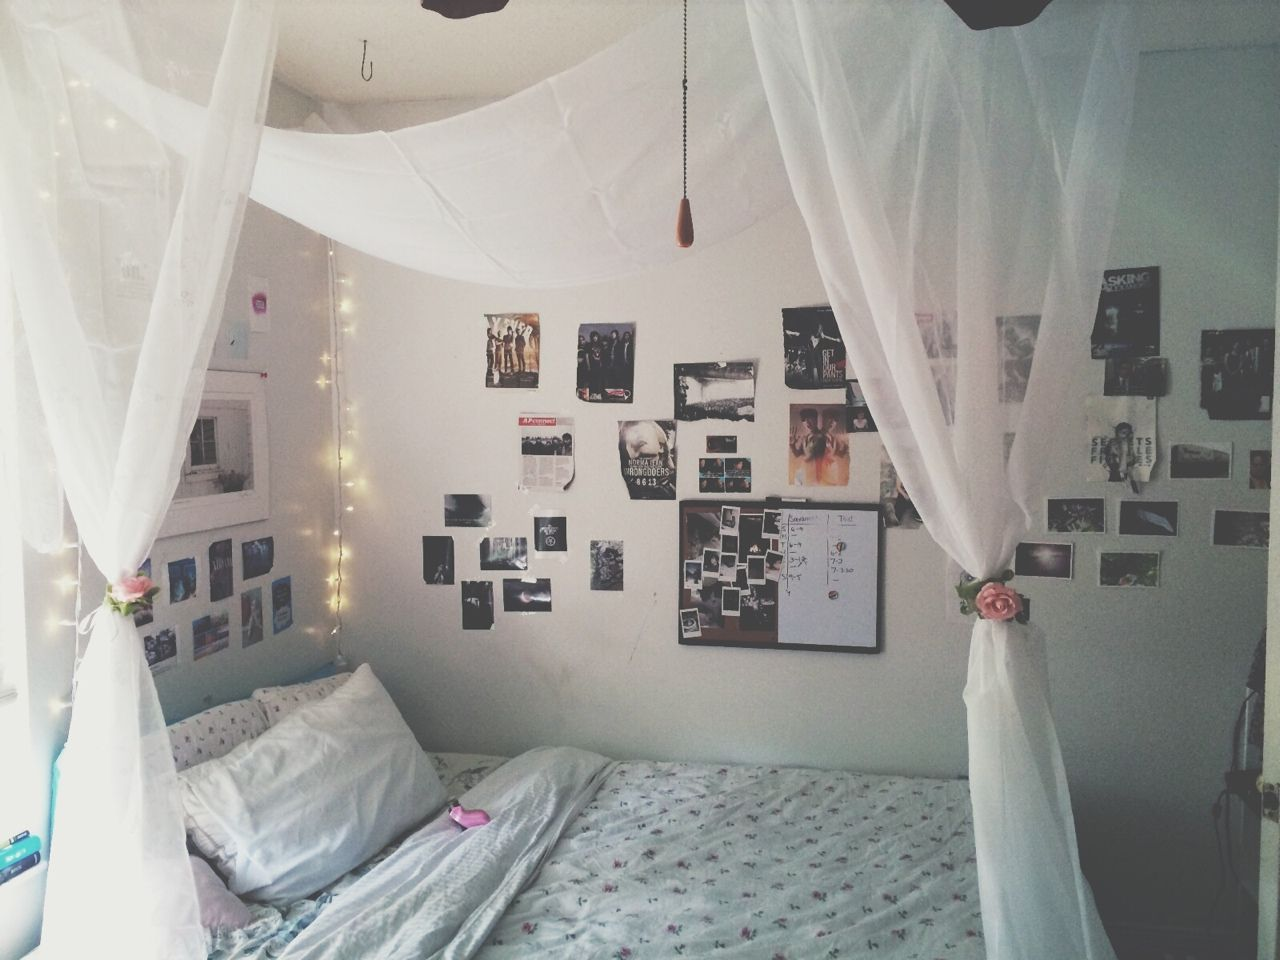 Pretty bedrooms tumblr for girls - Room Bedroom And Bed Image